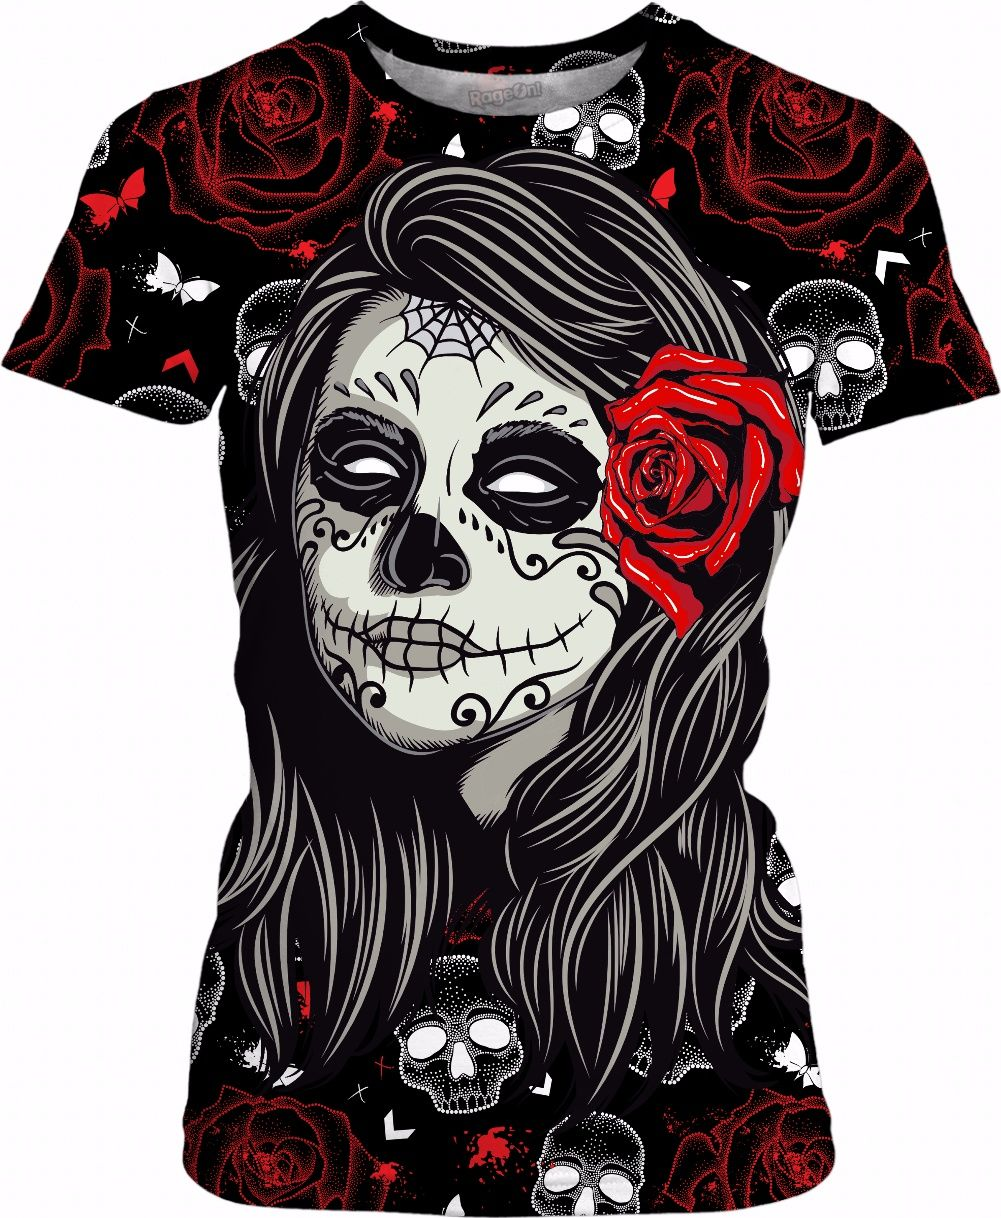 c40bda3fc Sugar Rose Skull Womens T shirt by: tbird at RageOn! - for more art and  design be sure to visit also www.casemiroarts.com, item printed by RageOn.